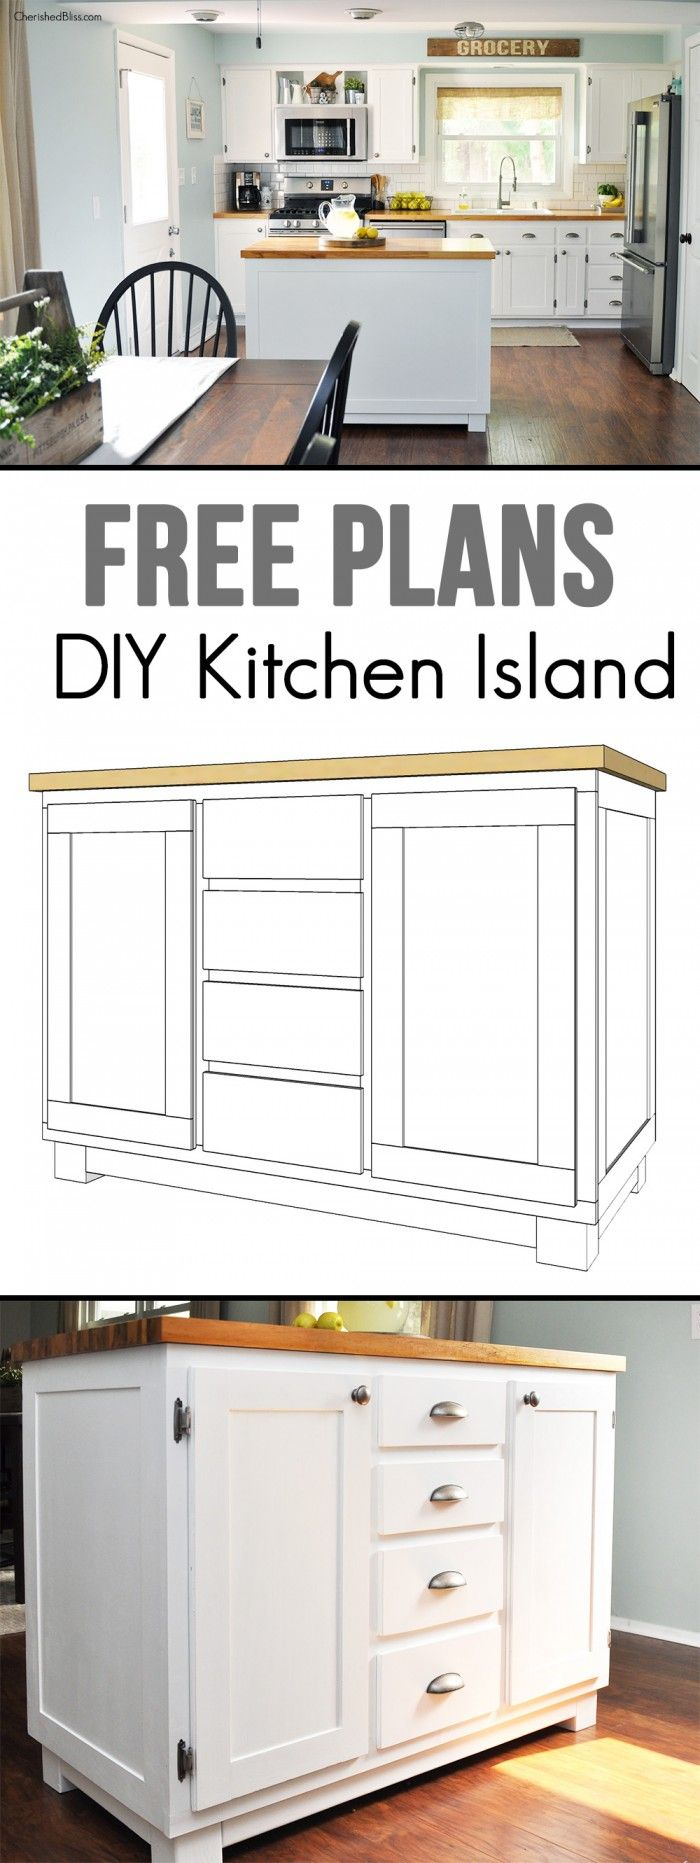 How to Build a DIY Kitchen Island | Diy kitchen island, You ve and ...